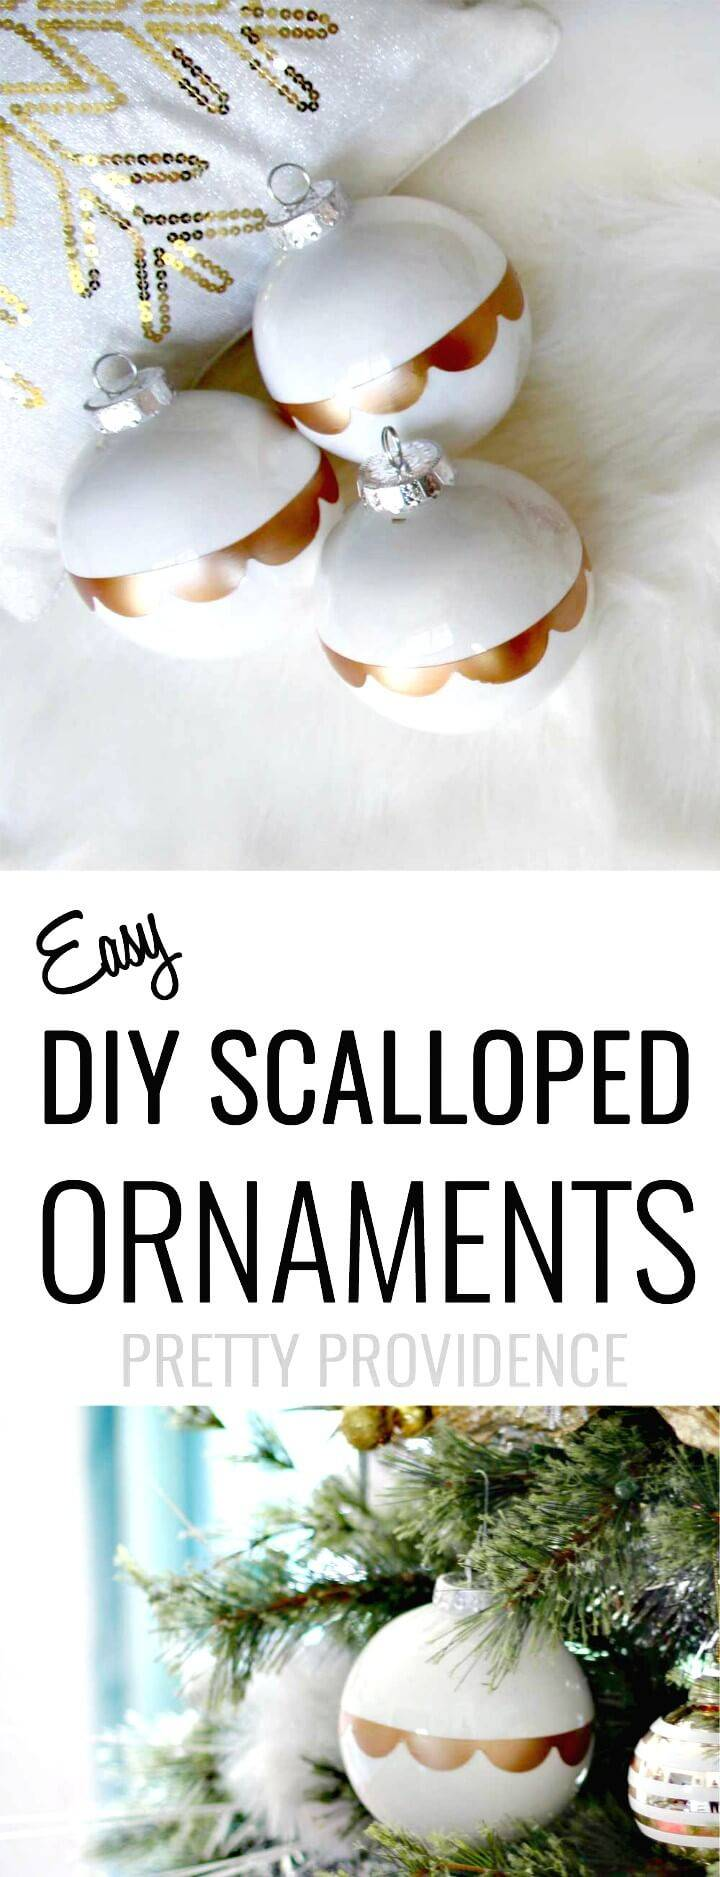 How to Make Gold Scalloped Ornaments Tutorial